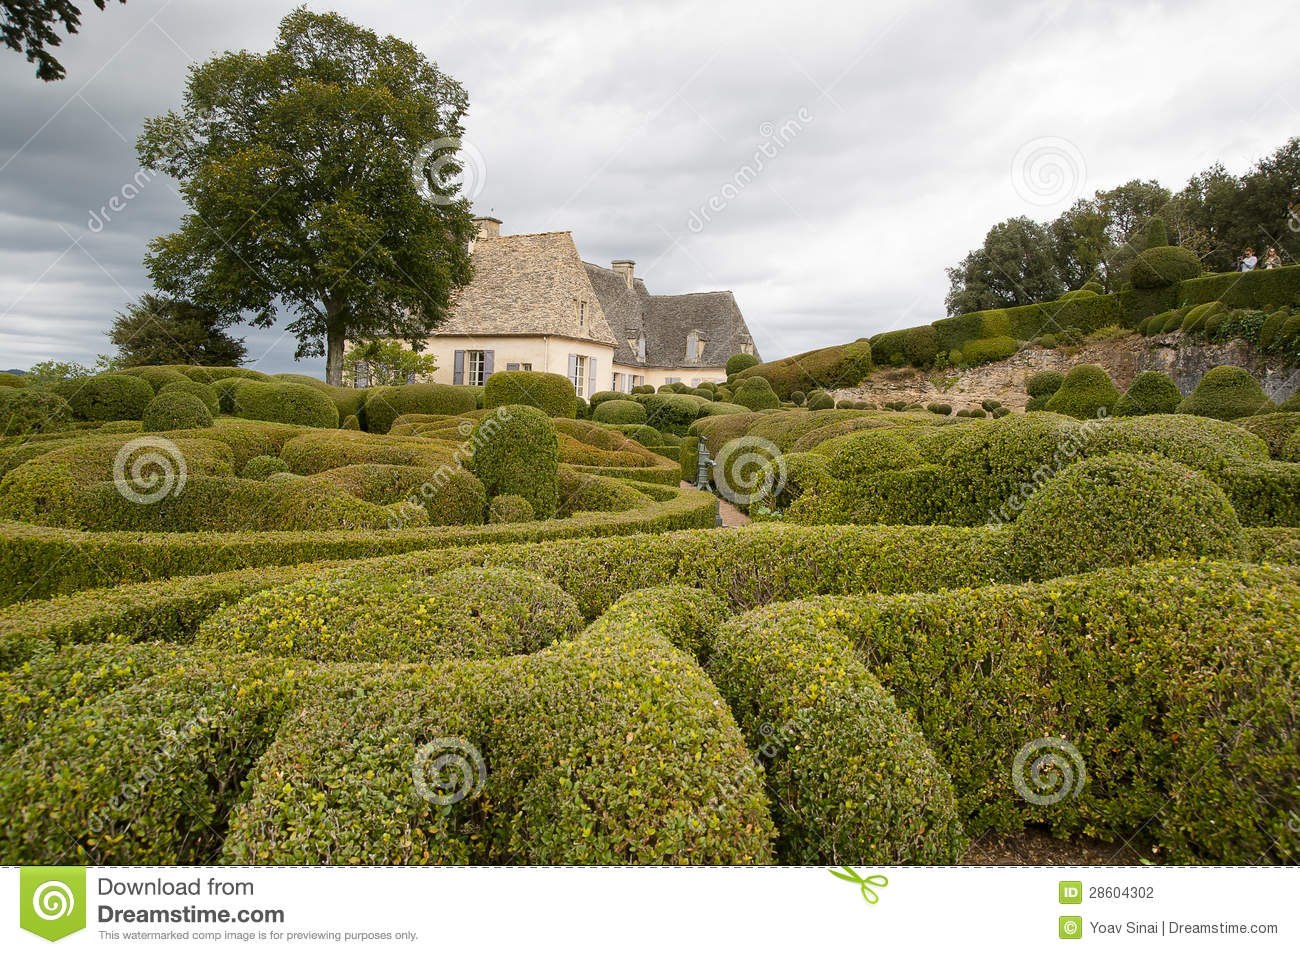 Le jardin marqueyssac france stock photography image for Jarden france